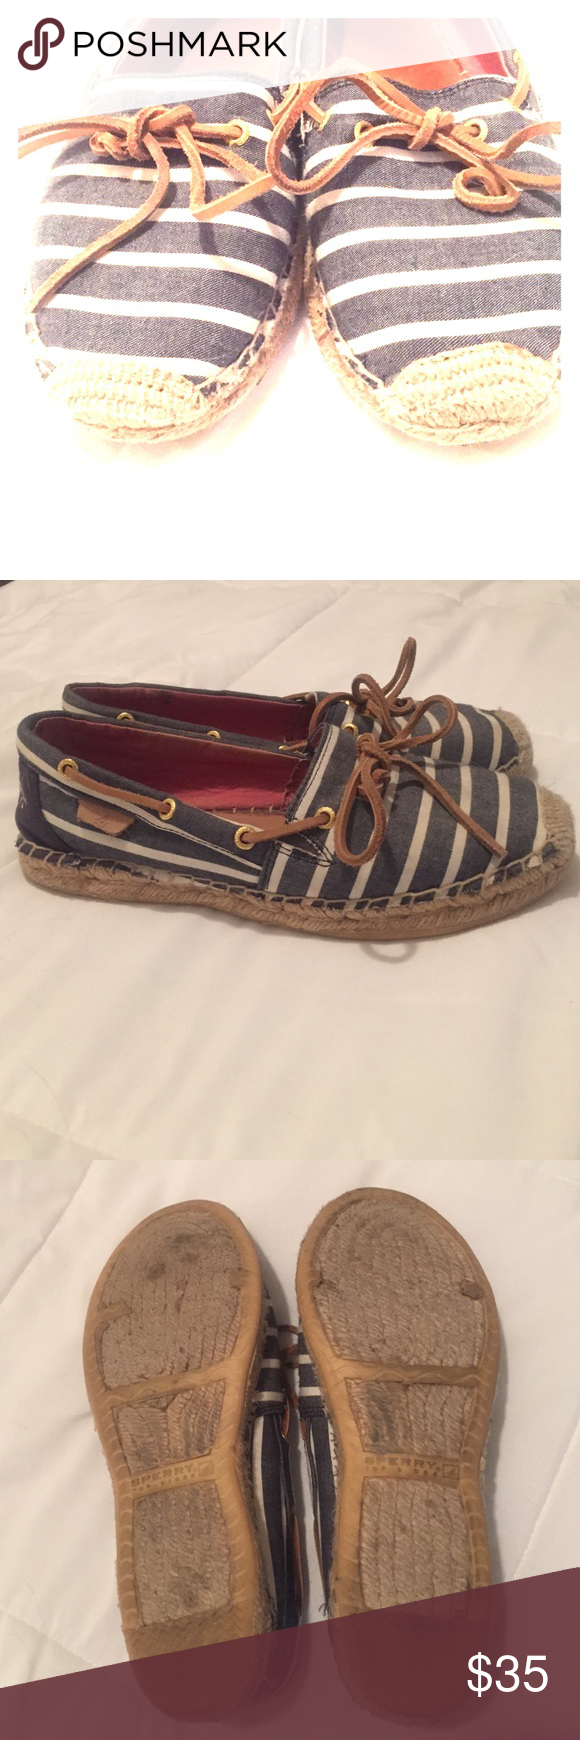 SPERRY'S 7.5 • Navy & White • Lots of life left! SPERRY'S 7.5 • Navy & White • Lots of life left! Sperry Top-Sider Shoes Flats & Loafers